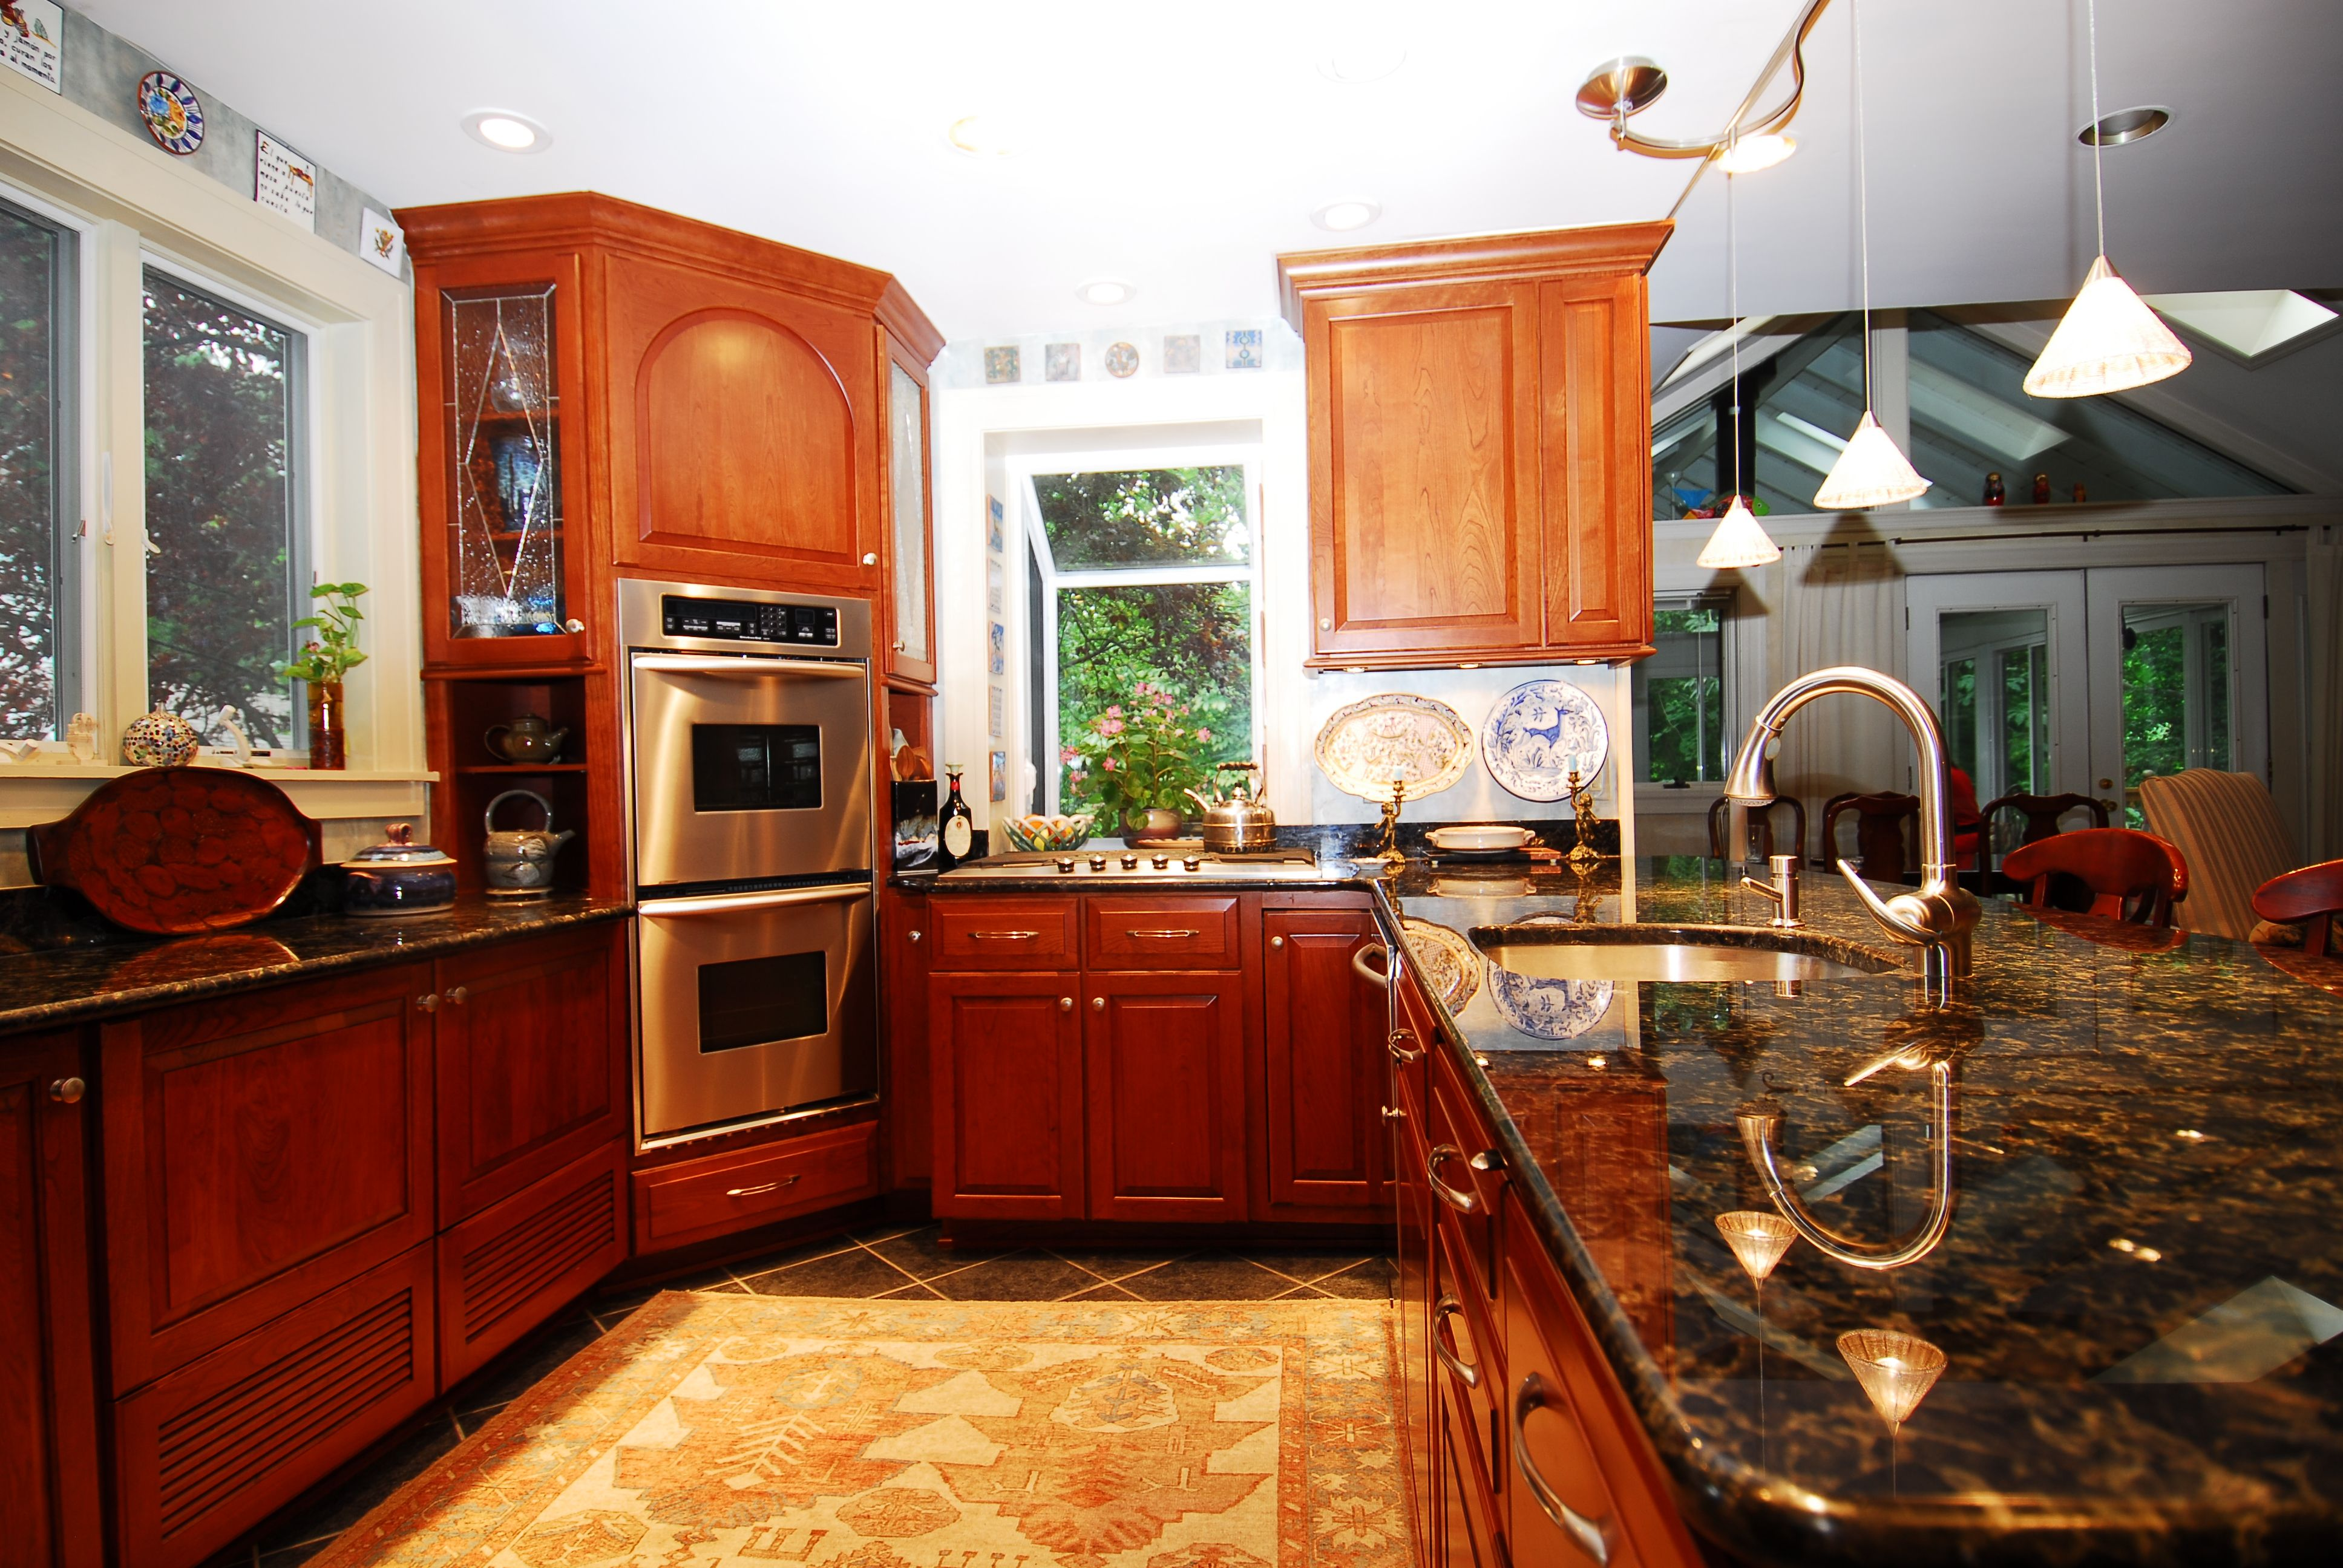 Kitchen Cabinet Refacing Gallery Kitchen Saver Refacing Kitchen Cabinets Custom Kitchen Cabinets Kitchen Cabinets And Flooring